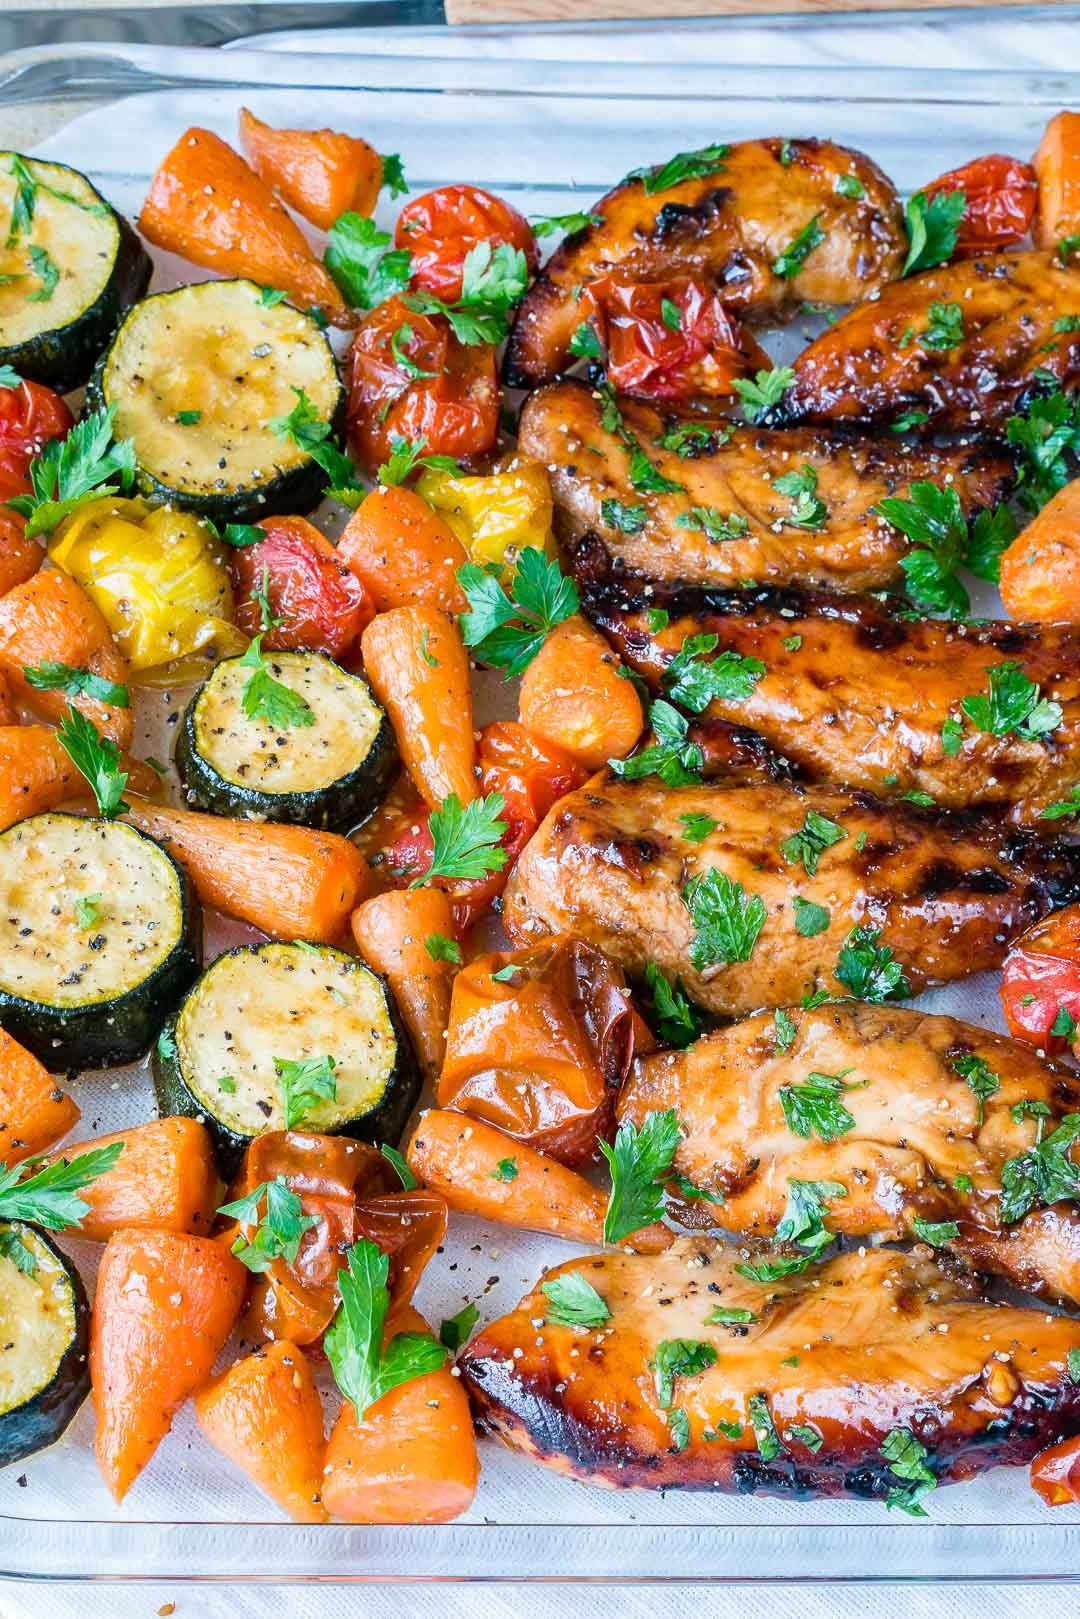 Clean Eating ONE PAN Balsamic Chicken + Veggies Whips up Quick is part of Balsamic chicken - 2 Tbsps raw honey 1 lb  chicken tenders 2 medium zucchini, sliced into 1 inch pieces 1 cup small    familymealplan familyrecipes dinnerideas